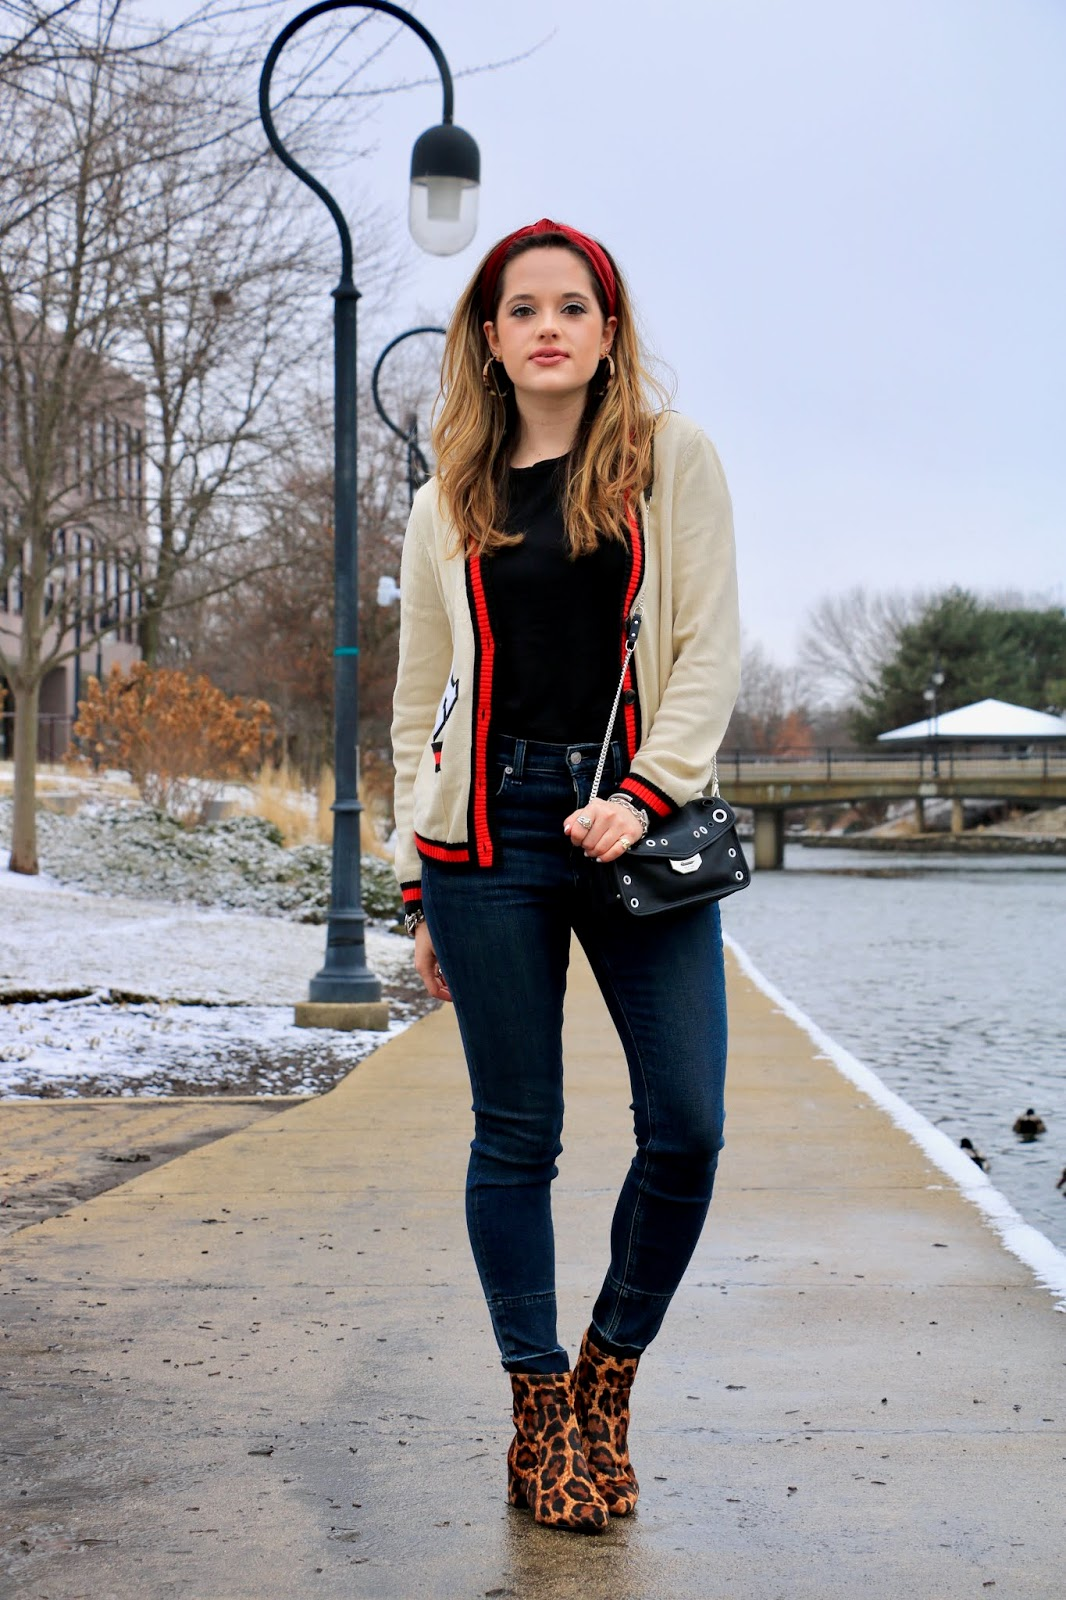 Nyc fashion blogger Kathleen Harper's winter outfit idea